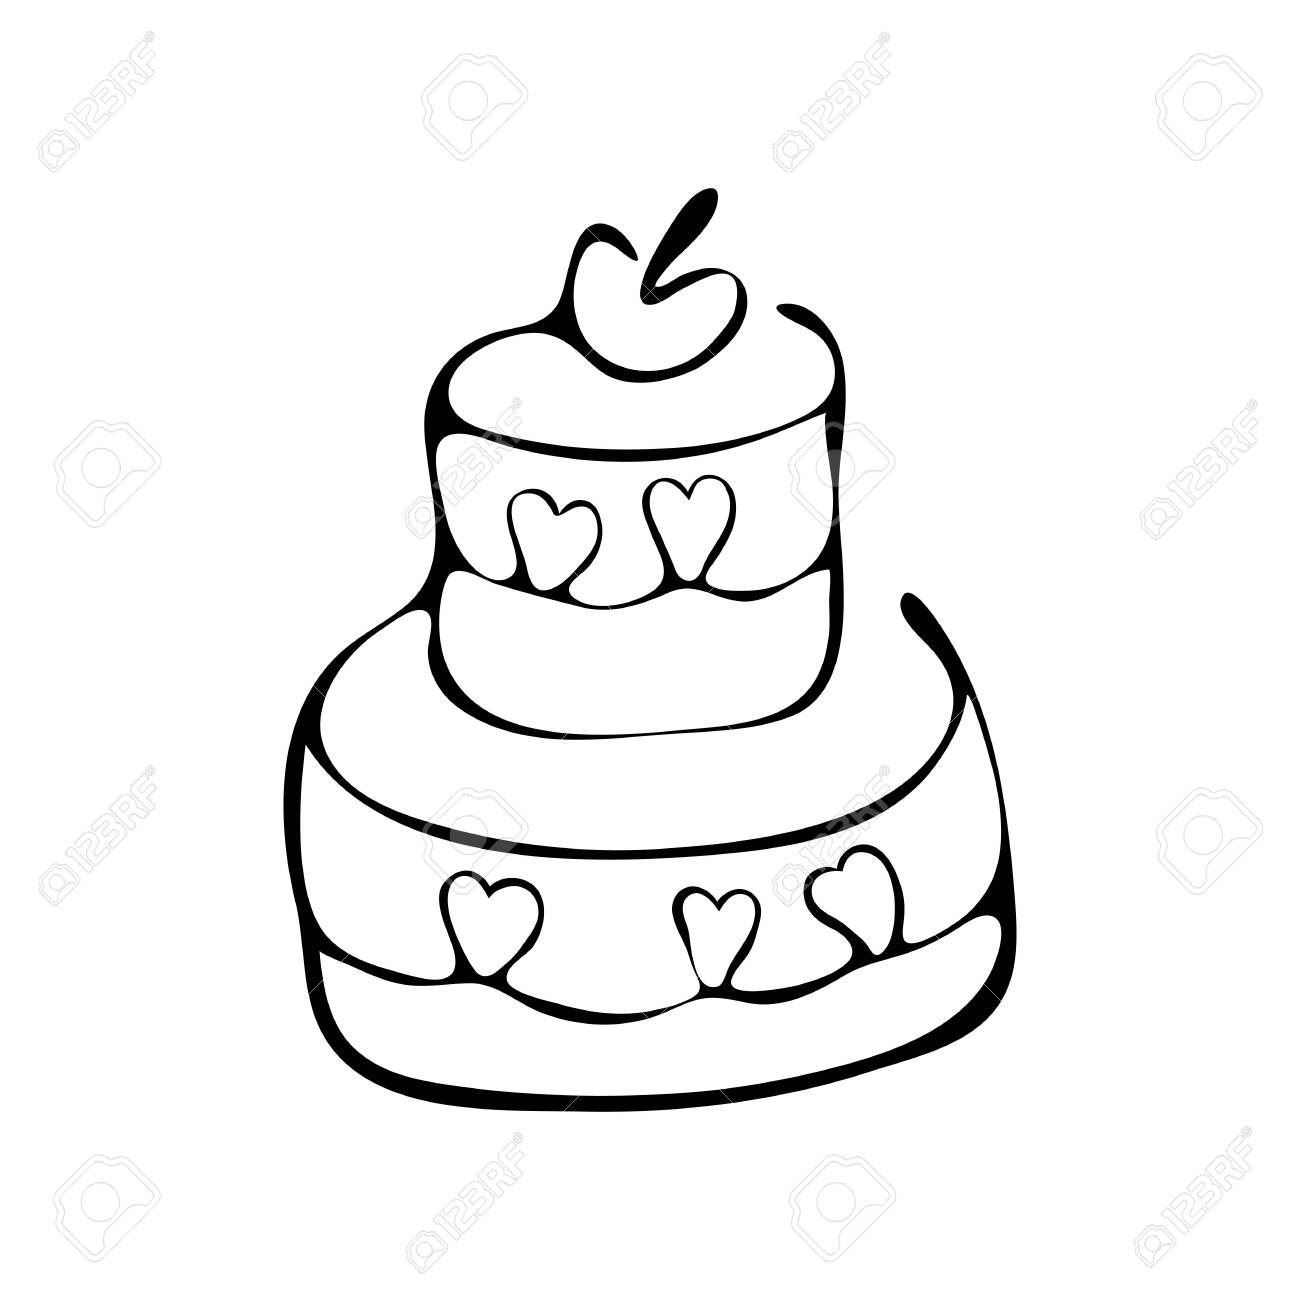 Surprising Continuous Line Drawing Tiered Birthday Cake Symbol Of Funny Birthday Cards Online Alyptdamsfinfo